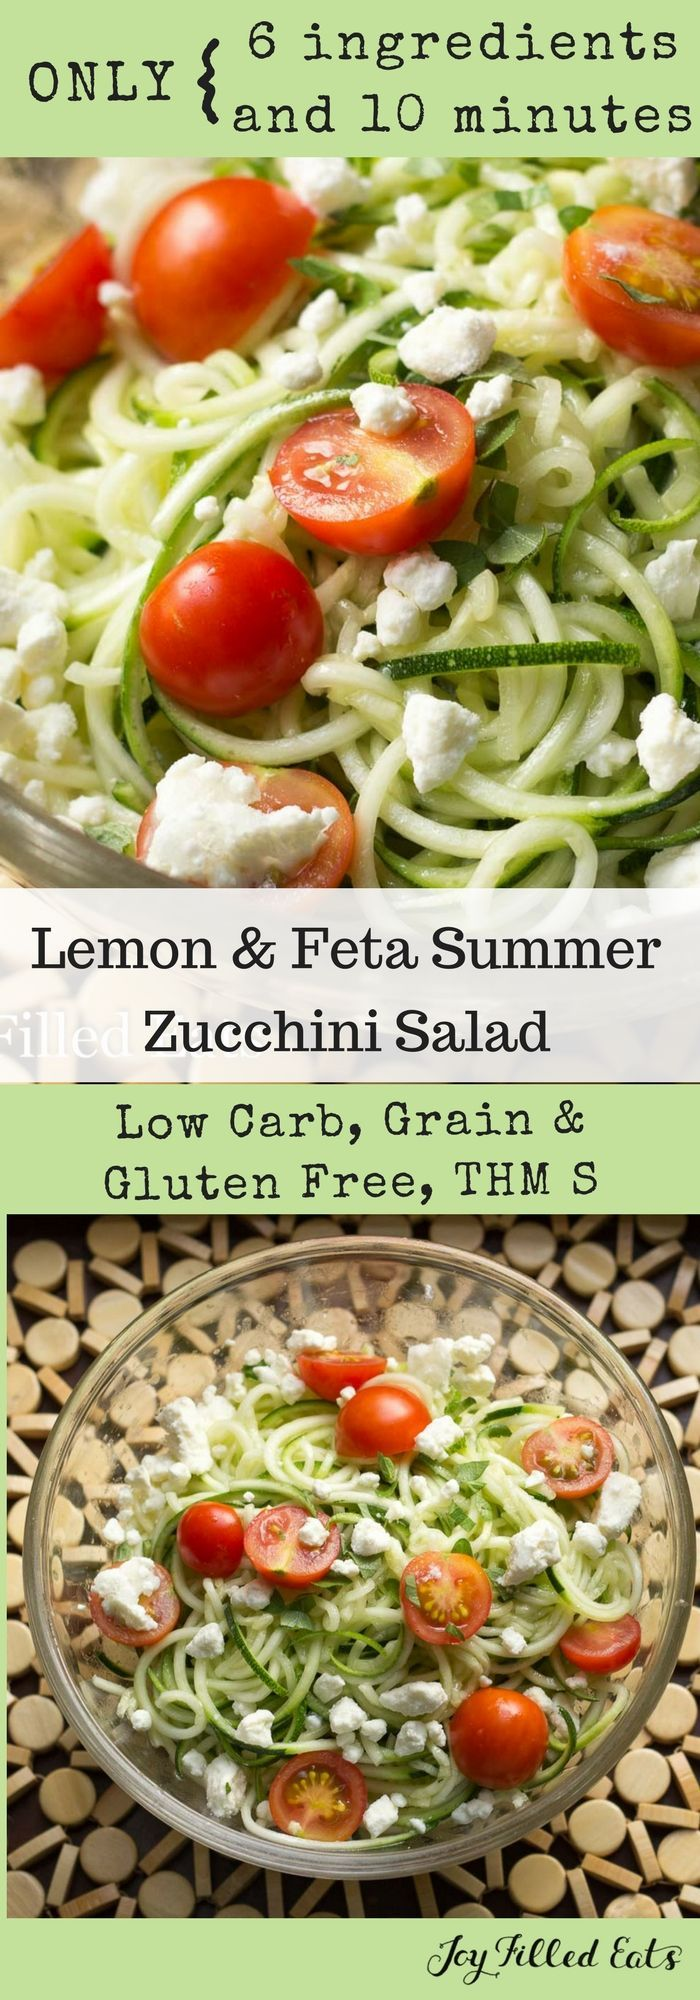 Lemon & Feta Summer Zucchini Salad - Low Carb, Grain Free, THM S, Gluten Free     via @joyfilledeats